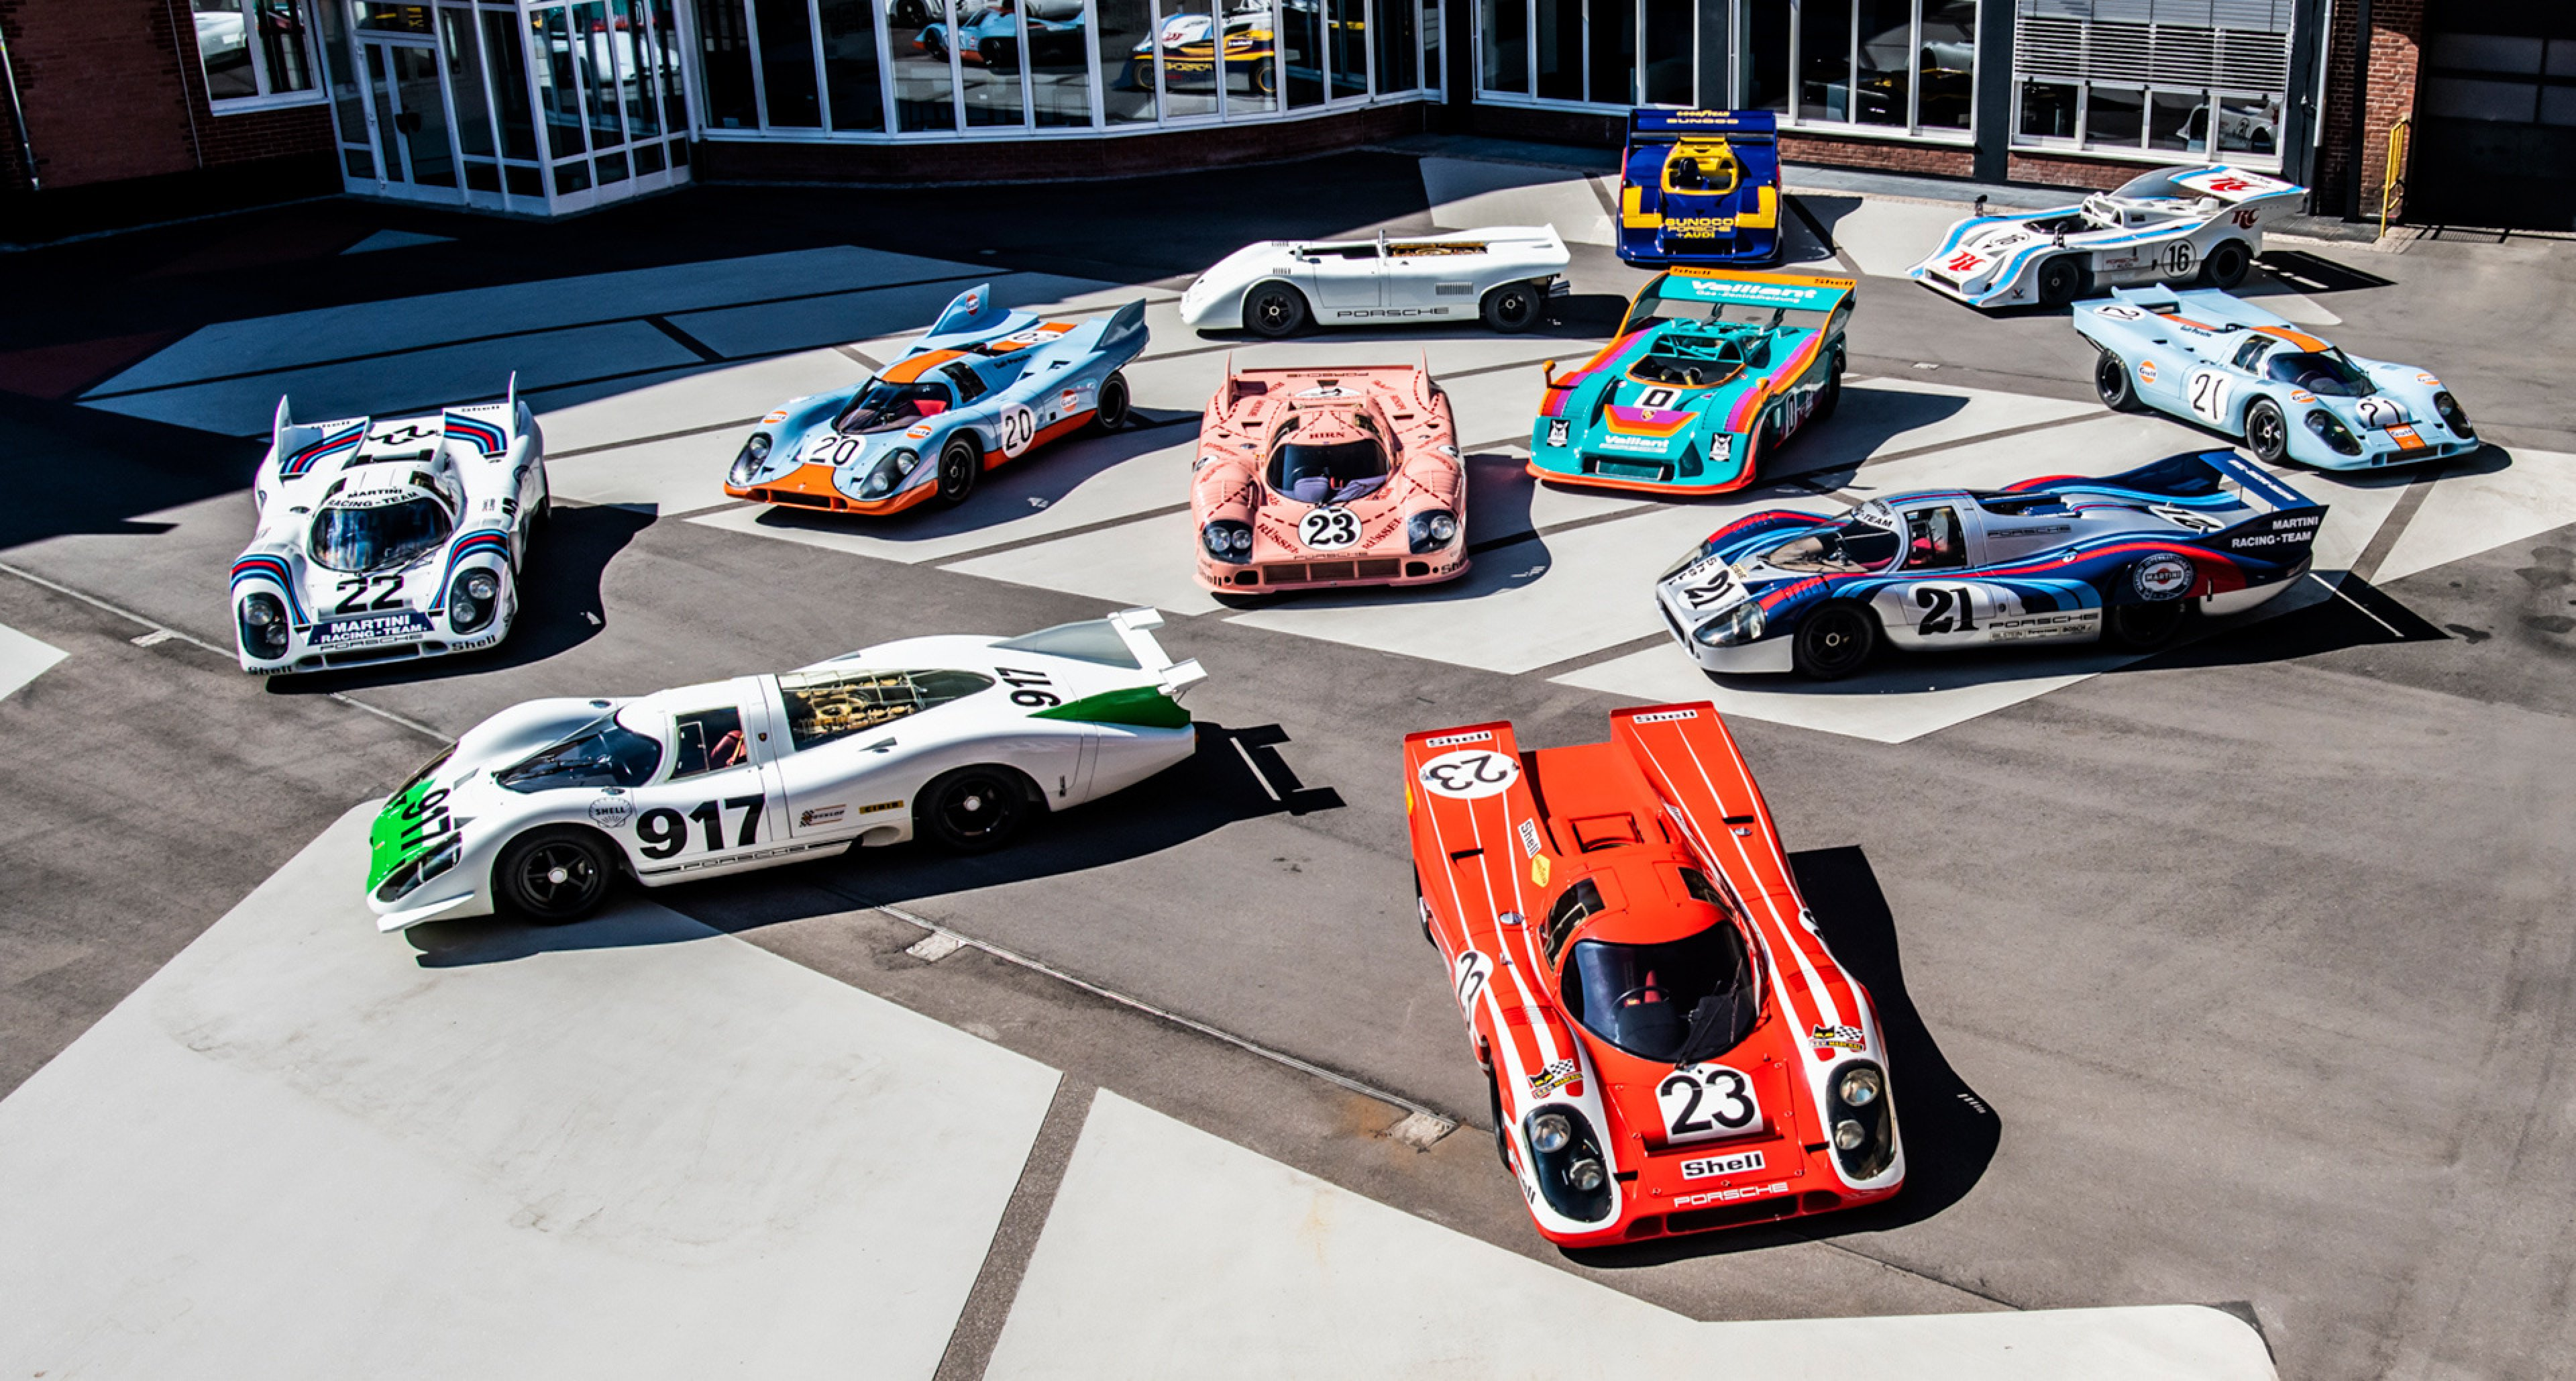 Porsche 917 For Sale >> You Ll Never See Another Porsche 917 Reunion Like This One